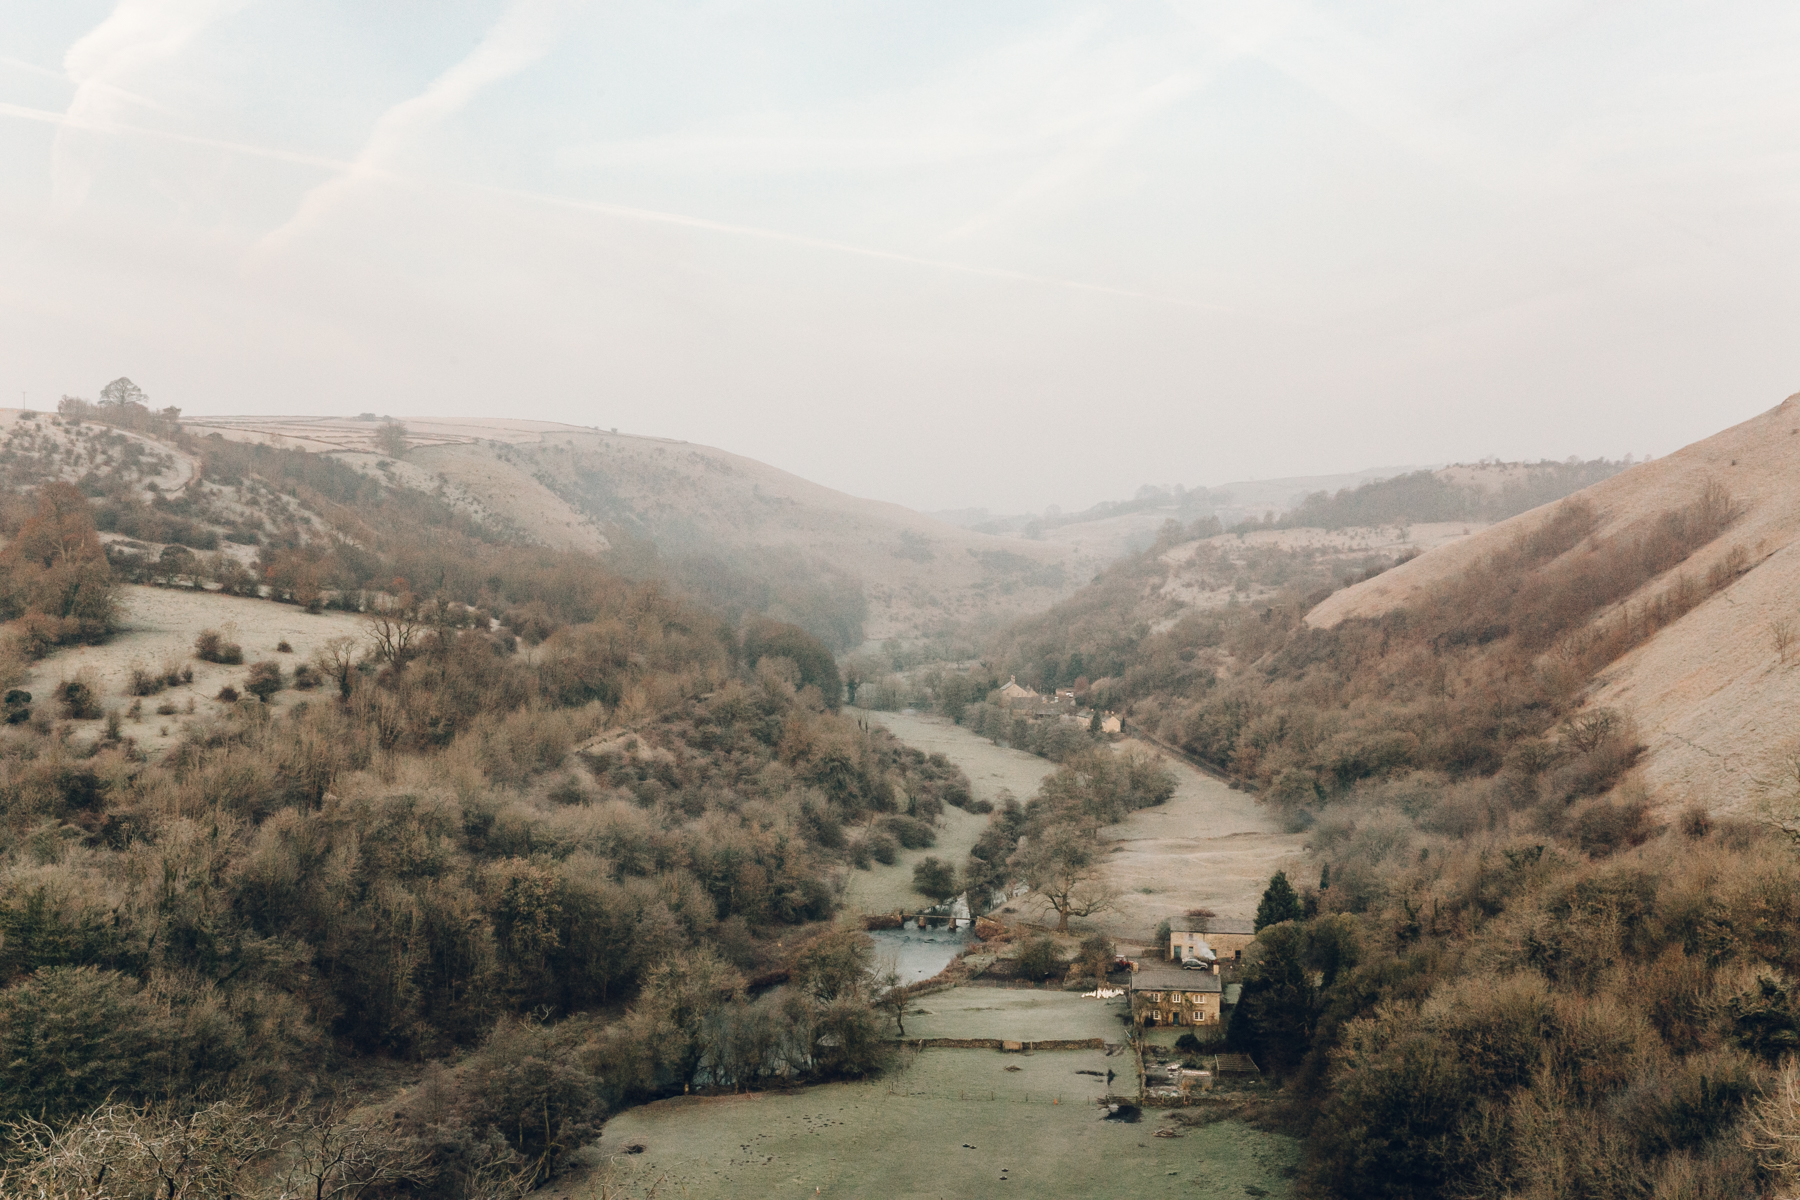 A frosty Winter morning looking over Monsal Dale in the Peak District.